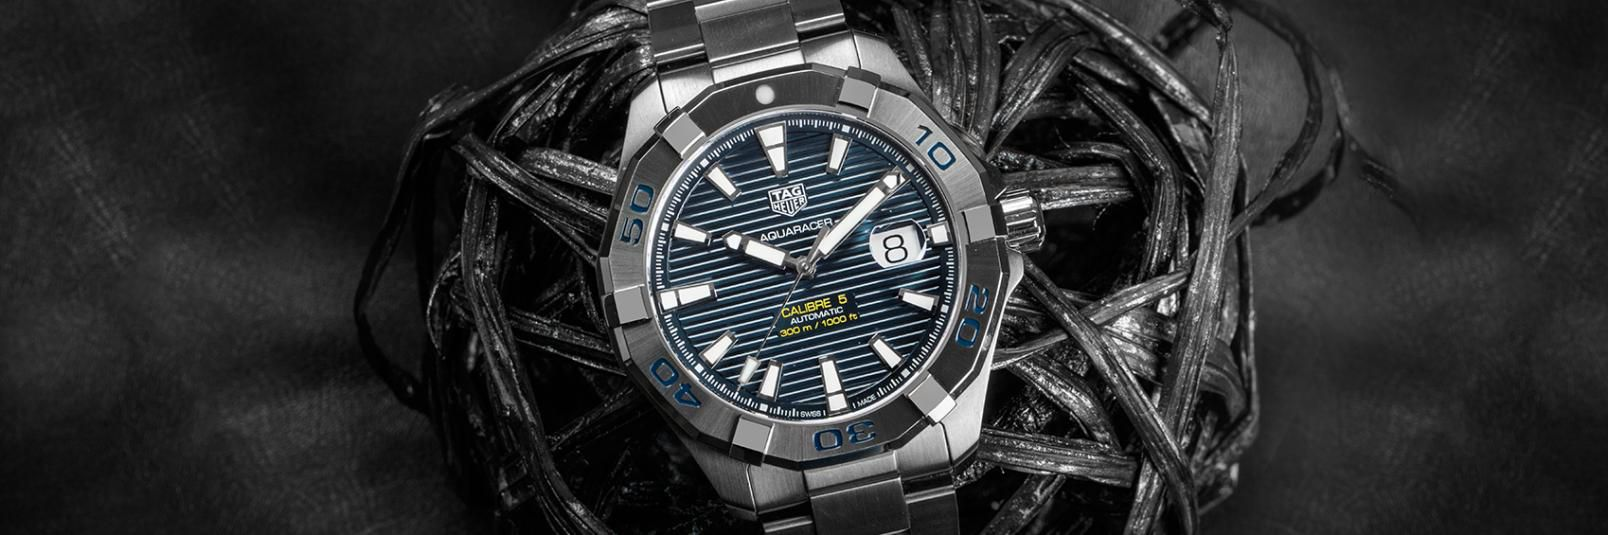 Đồng hồ Aquaracer-3-Hand-Watches